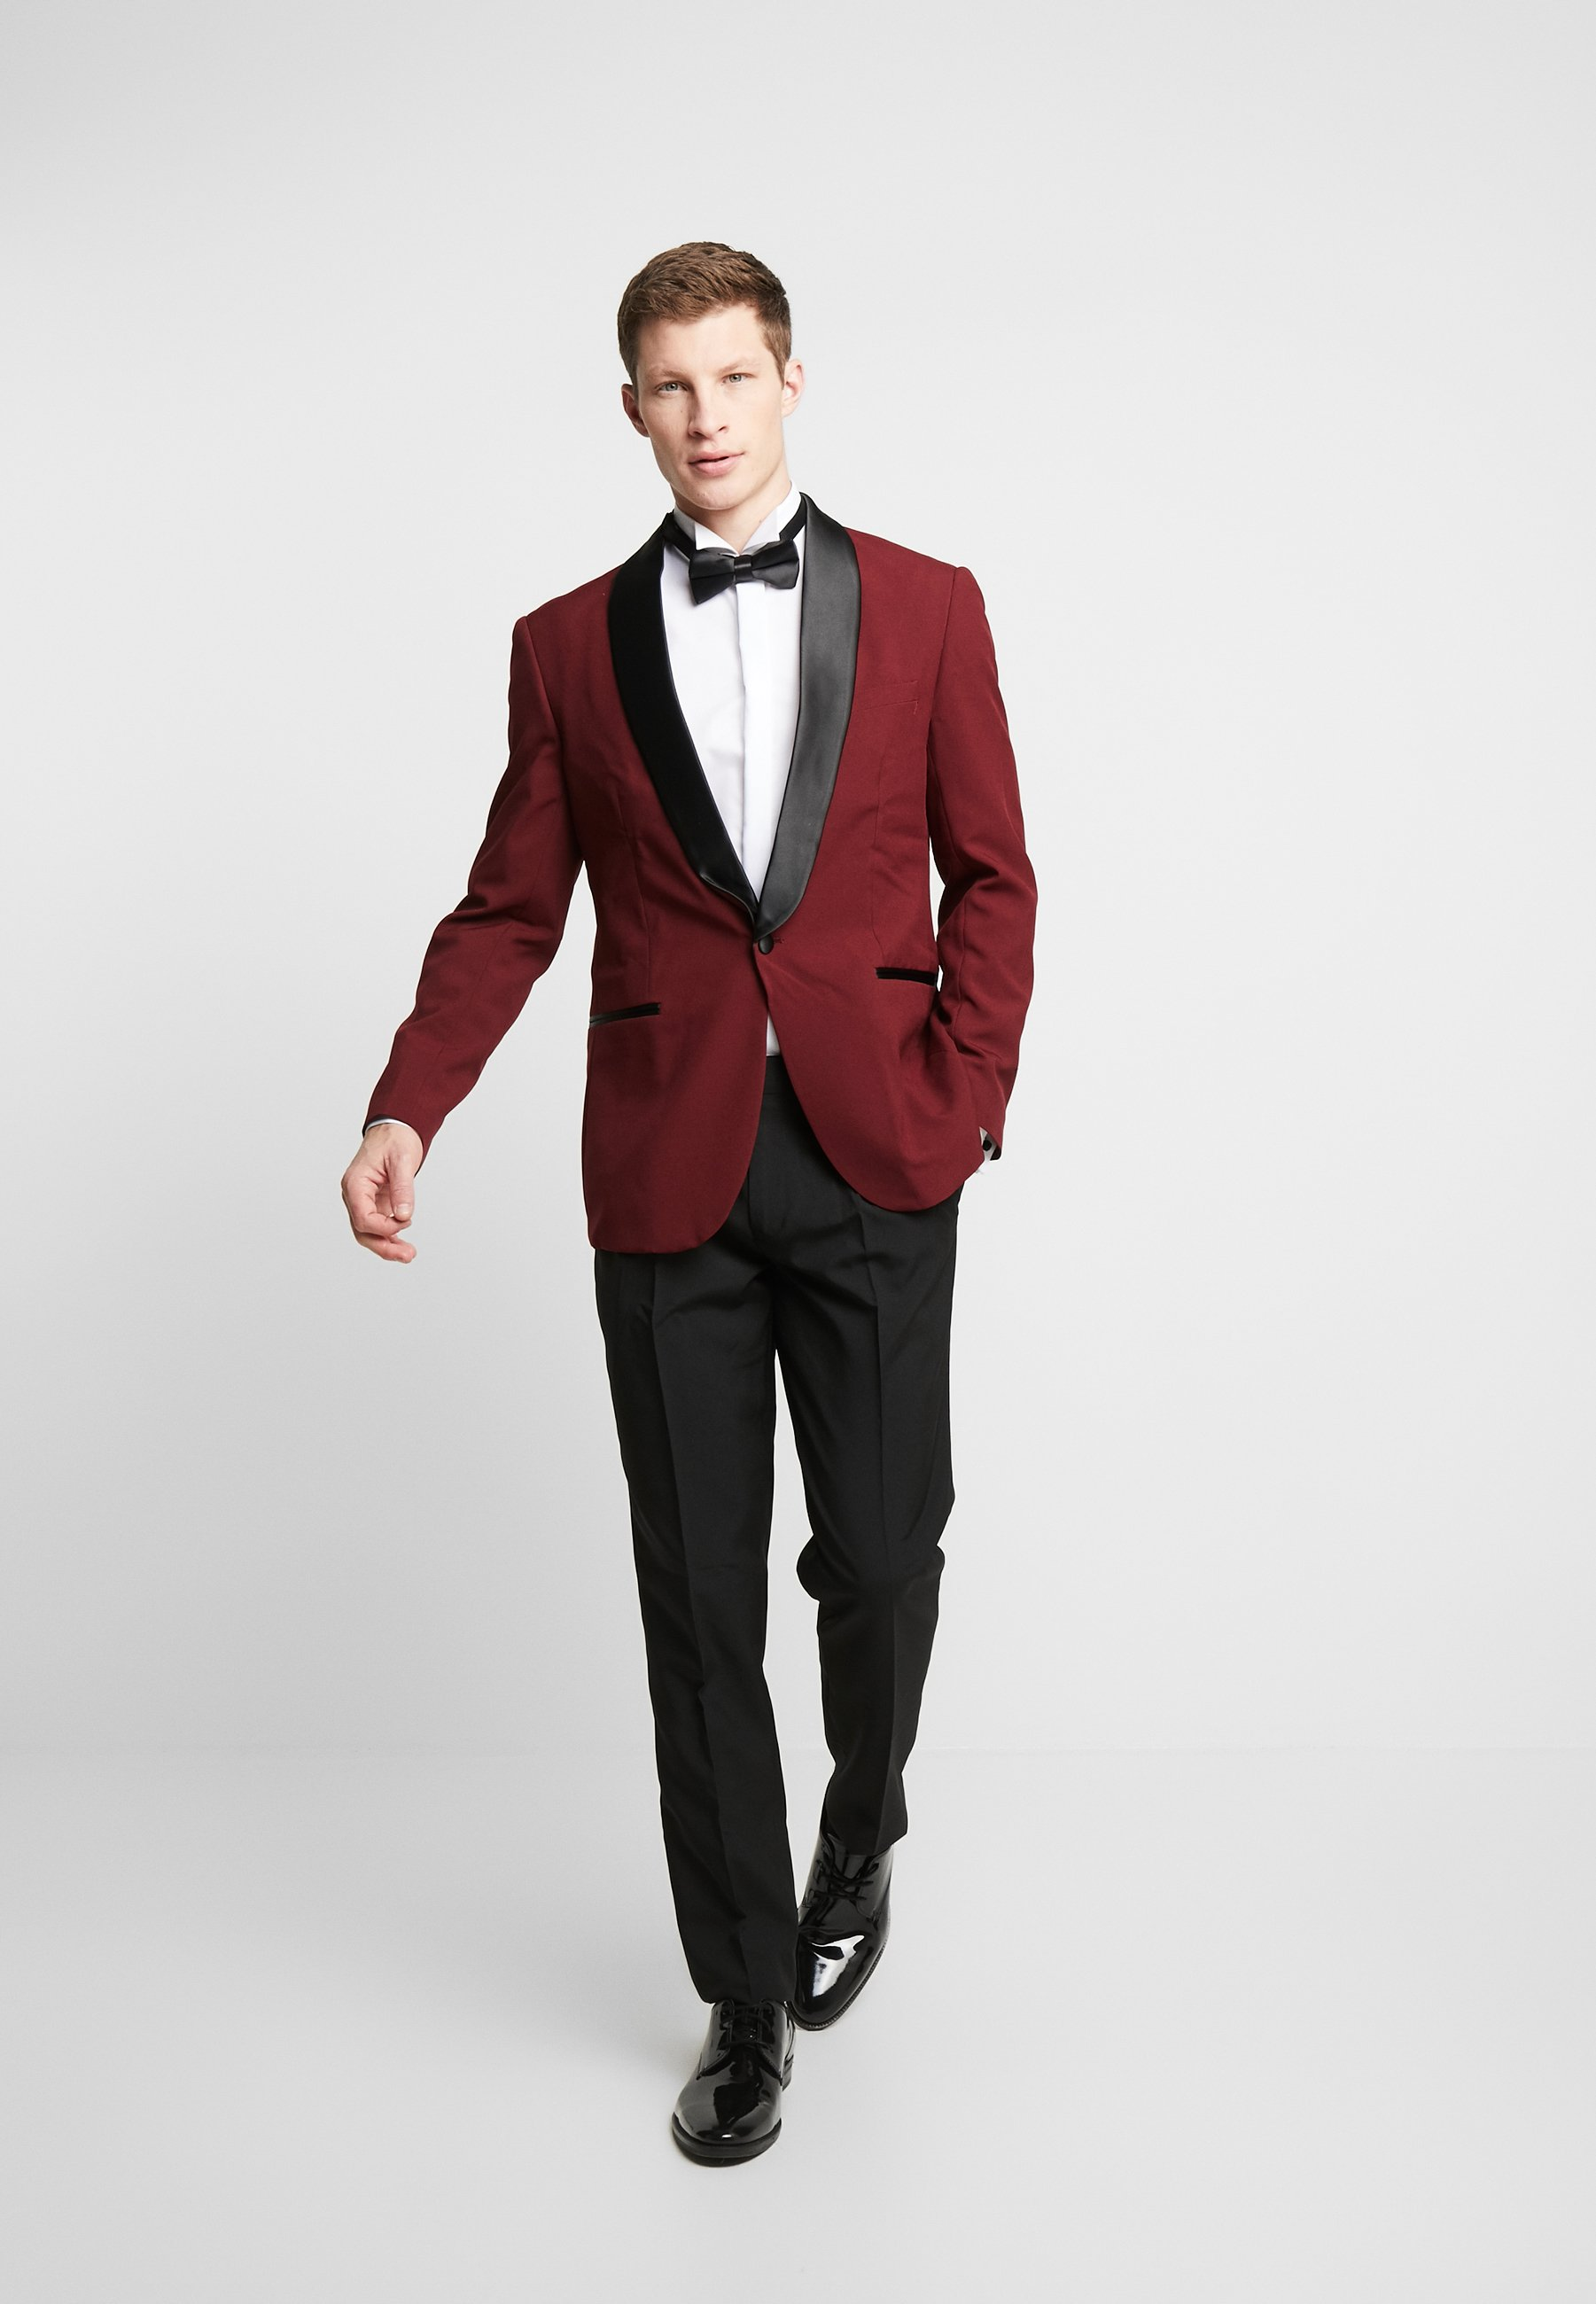 HOT TUXEDO Dress burgundy